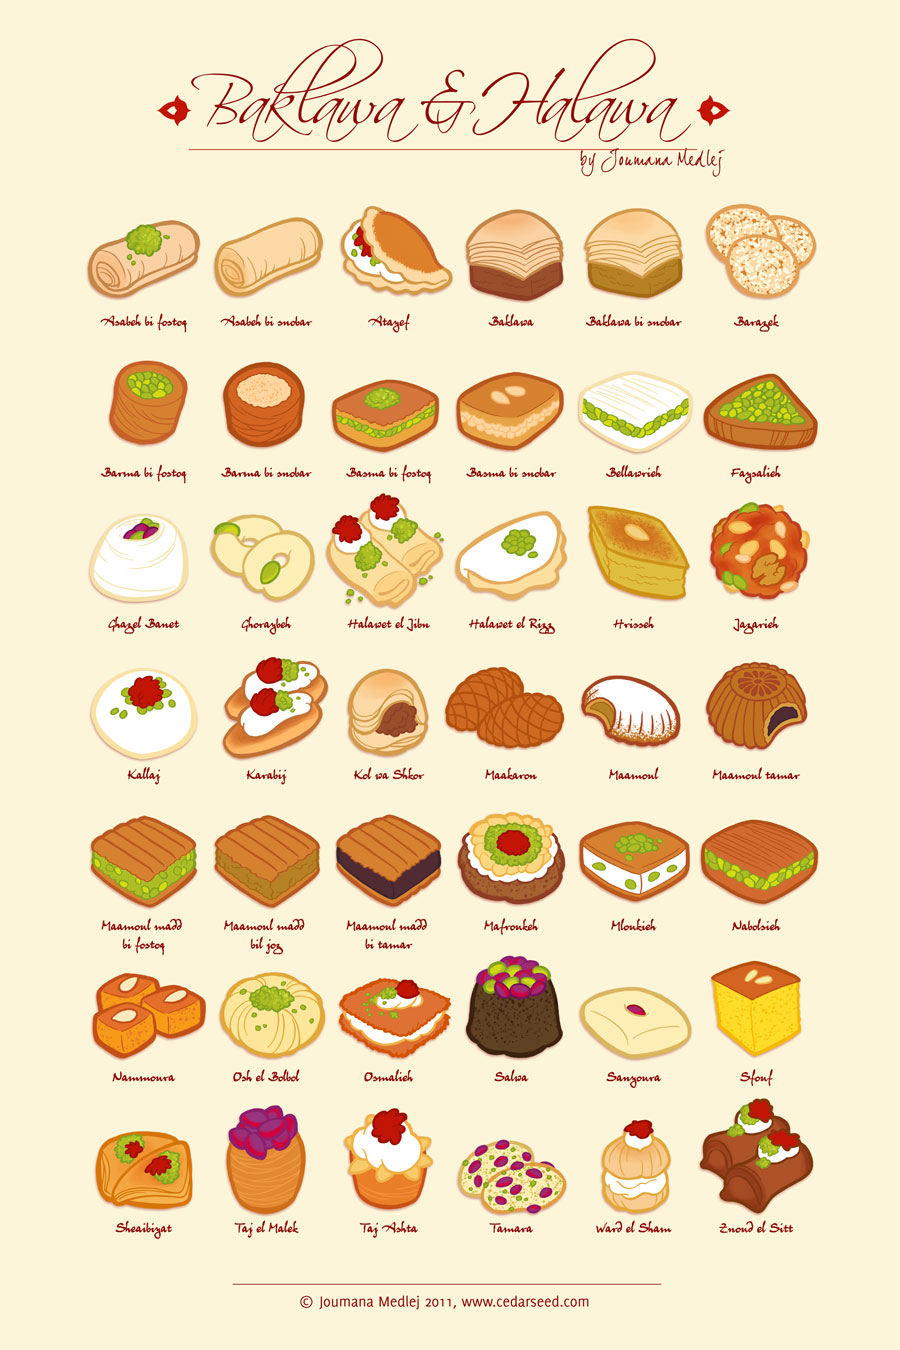 Do You Know The Different Baklava Choices By Name